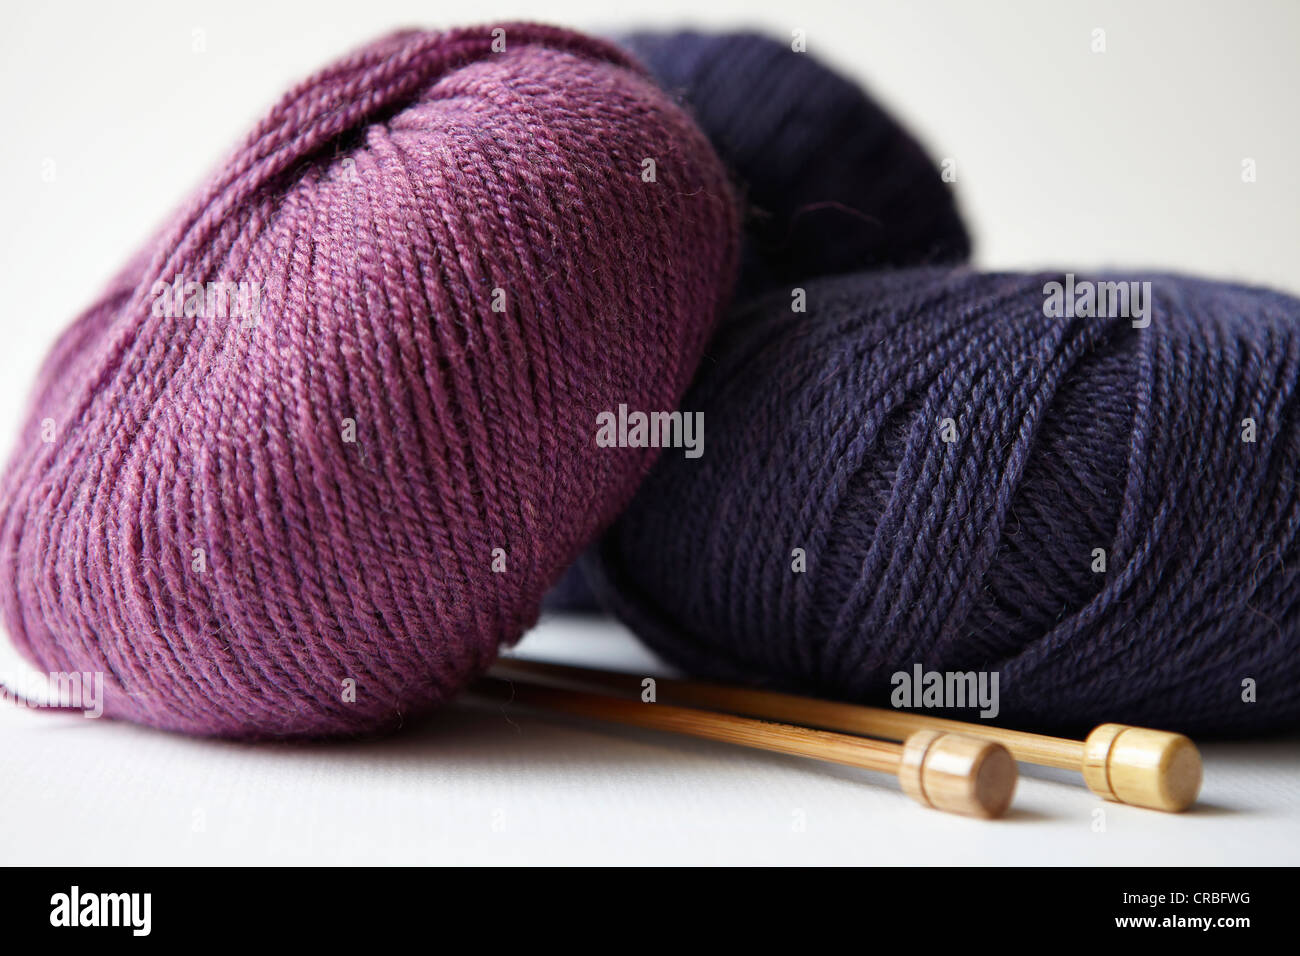 Skeins of yarn and knitting needles - Stock Image